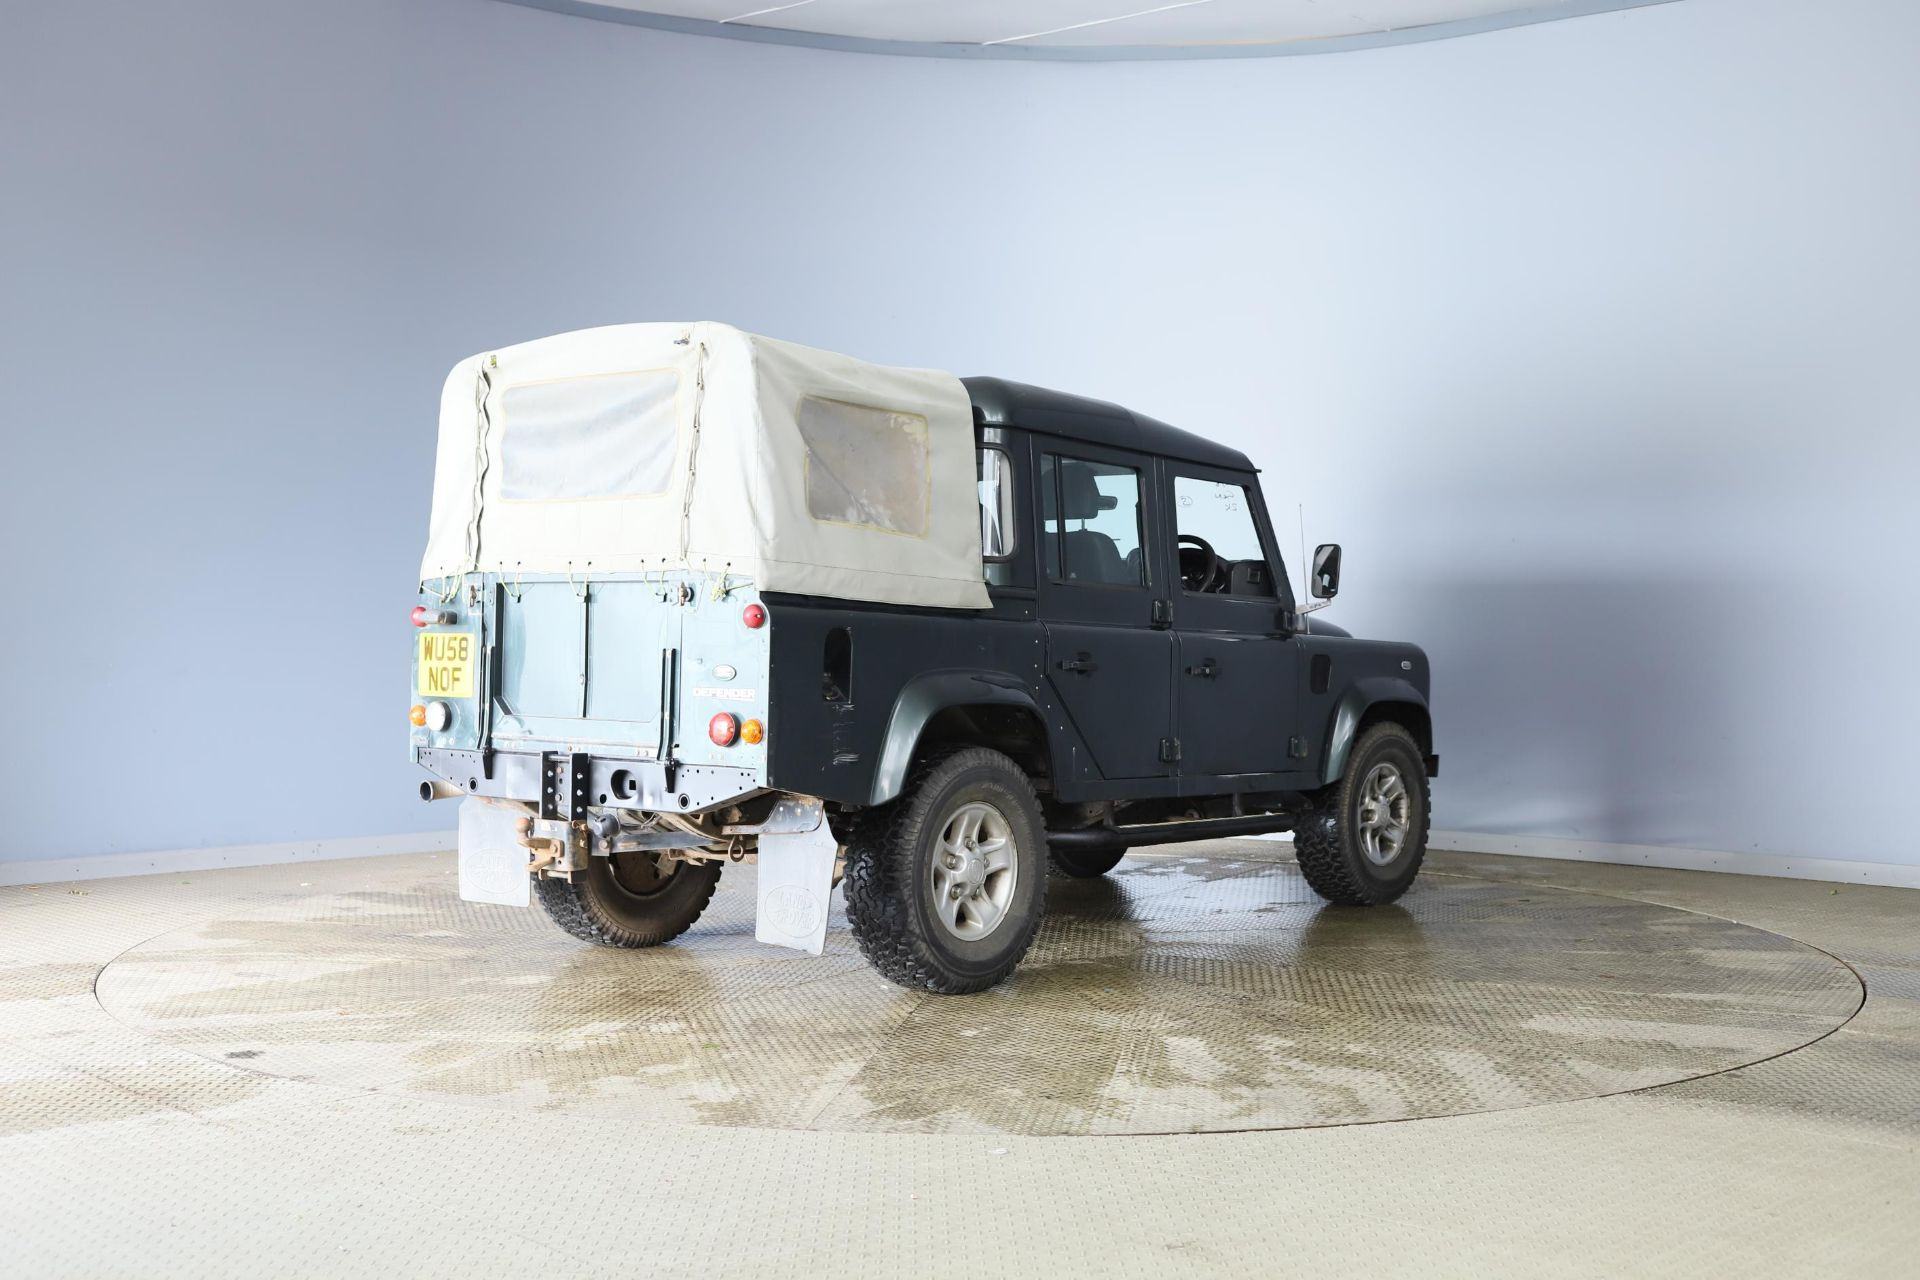 2008/58 REG LAND ROVER DEFENDER 110 XS DC LWB 2.4 DIESEL GREEN LIGHT 4X4, SHOWING 2 FORMER KEEPERS - Image 6 of 12